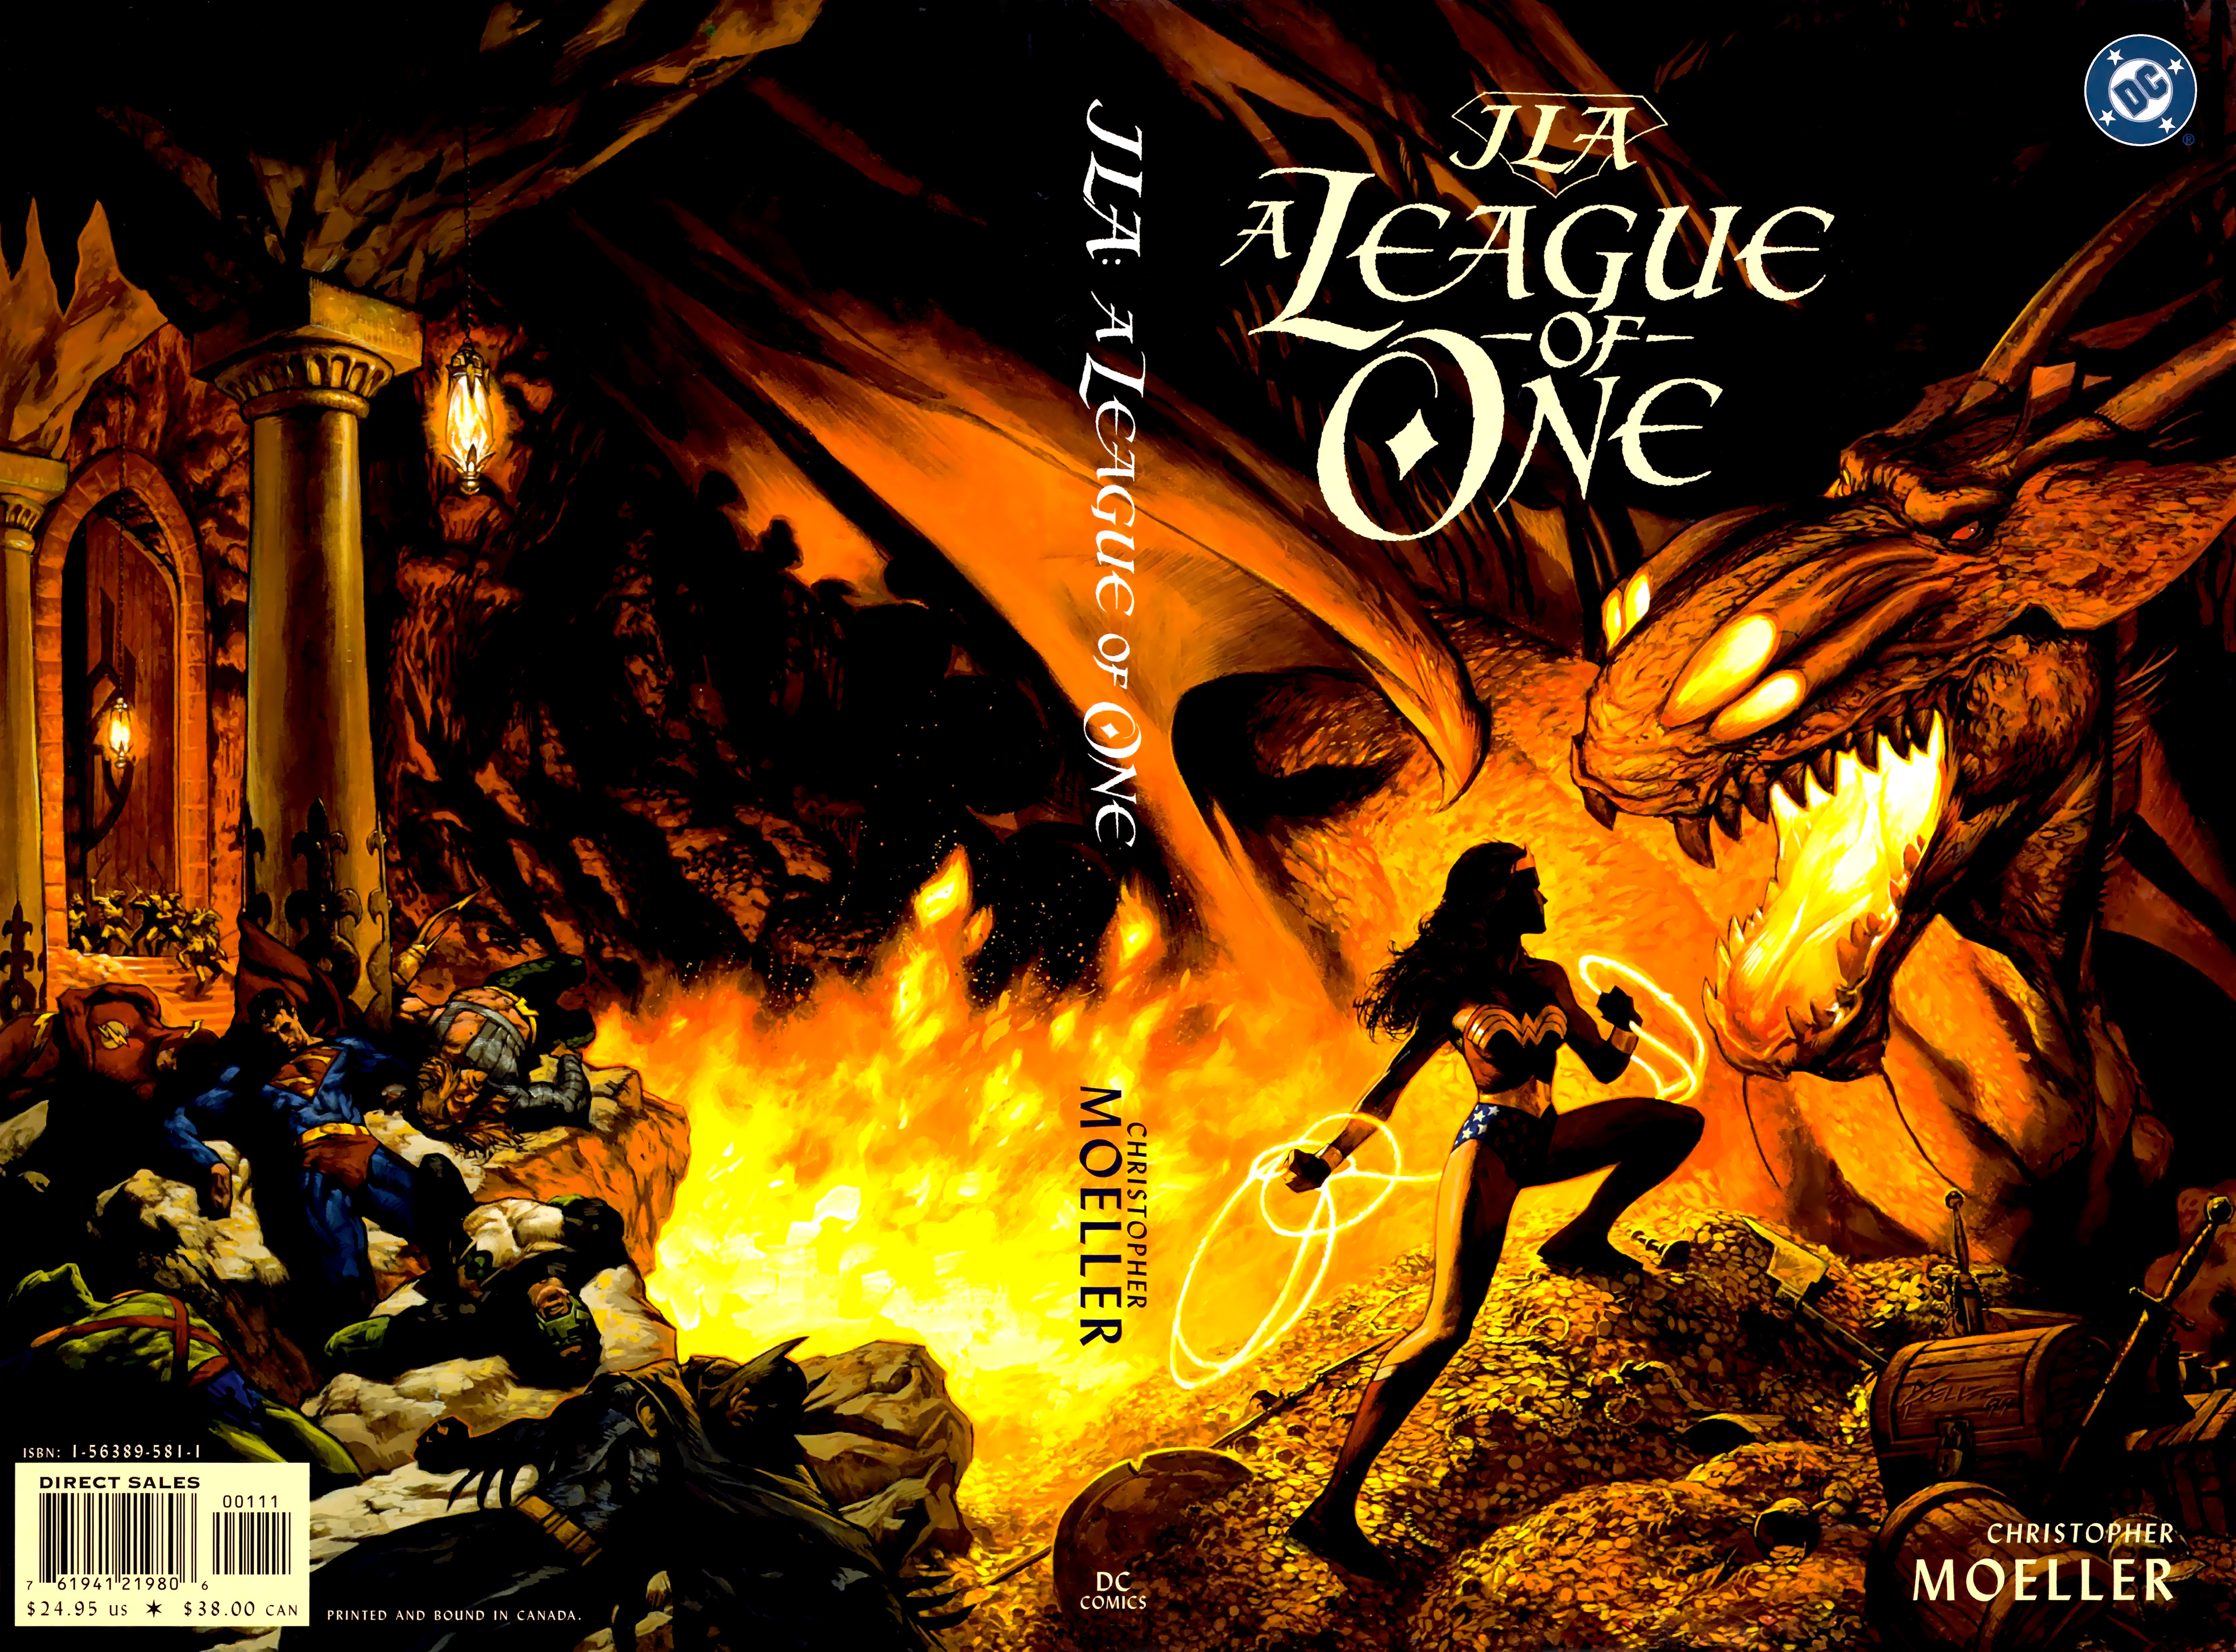 Read online JLA: A League of One comic -  Issue # Full - 1